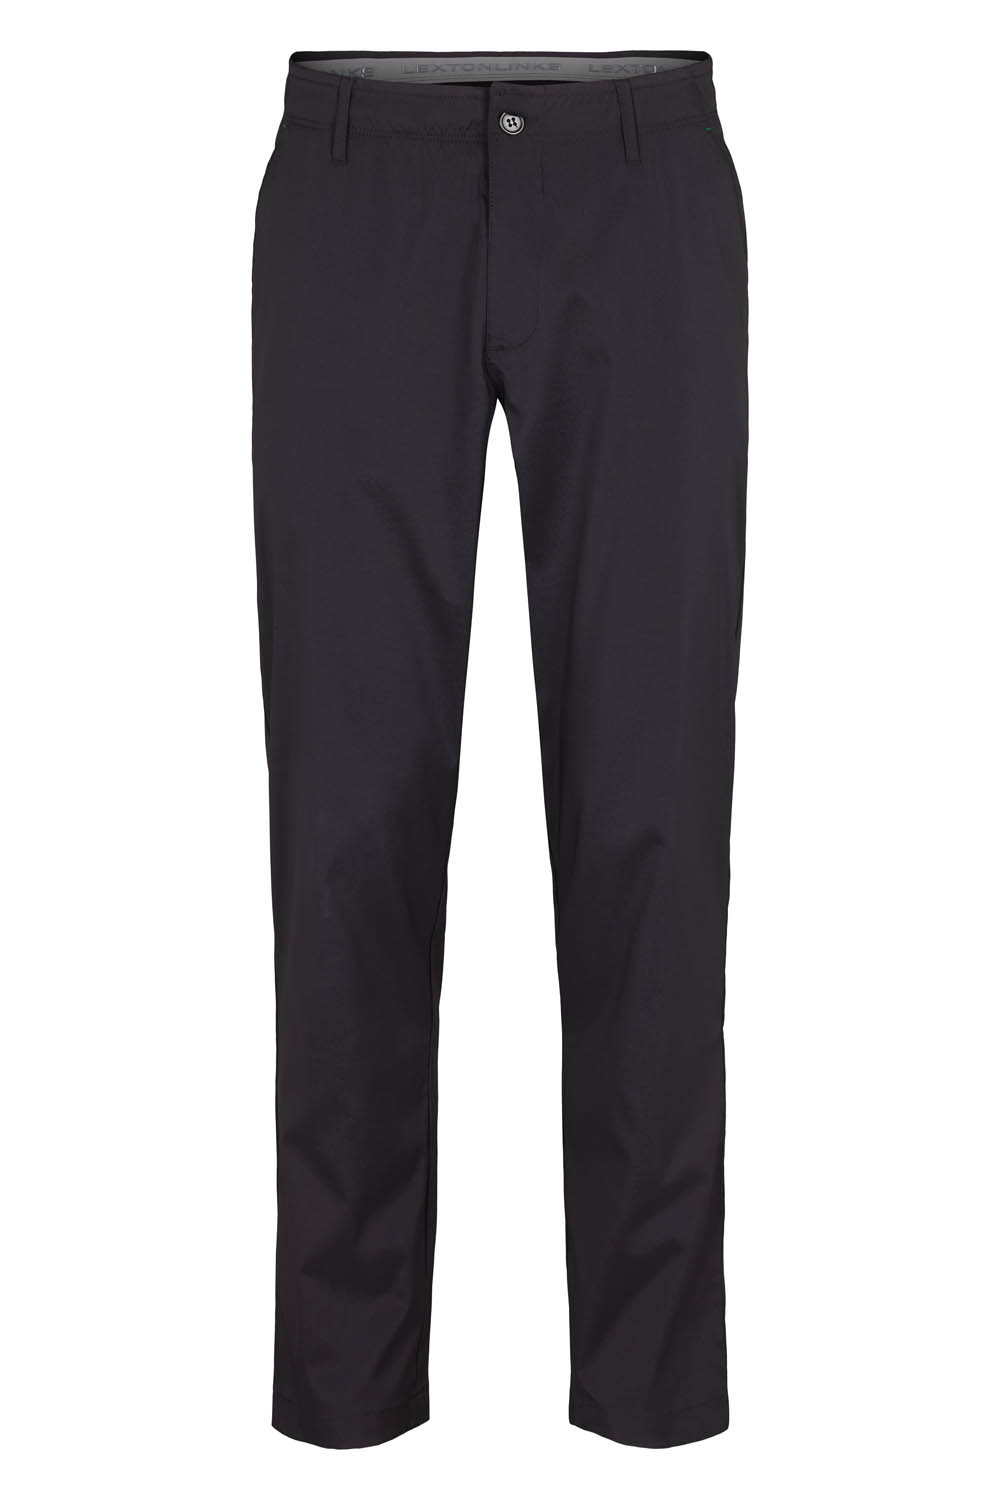 Dover Pants - €69,-